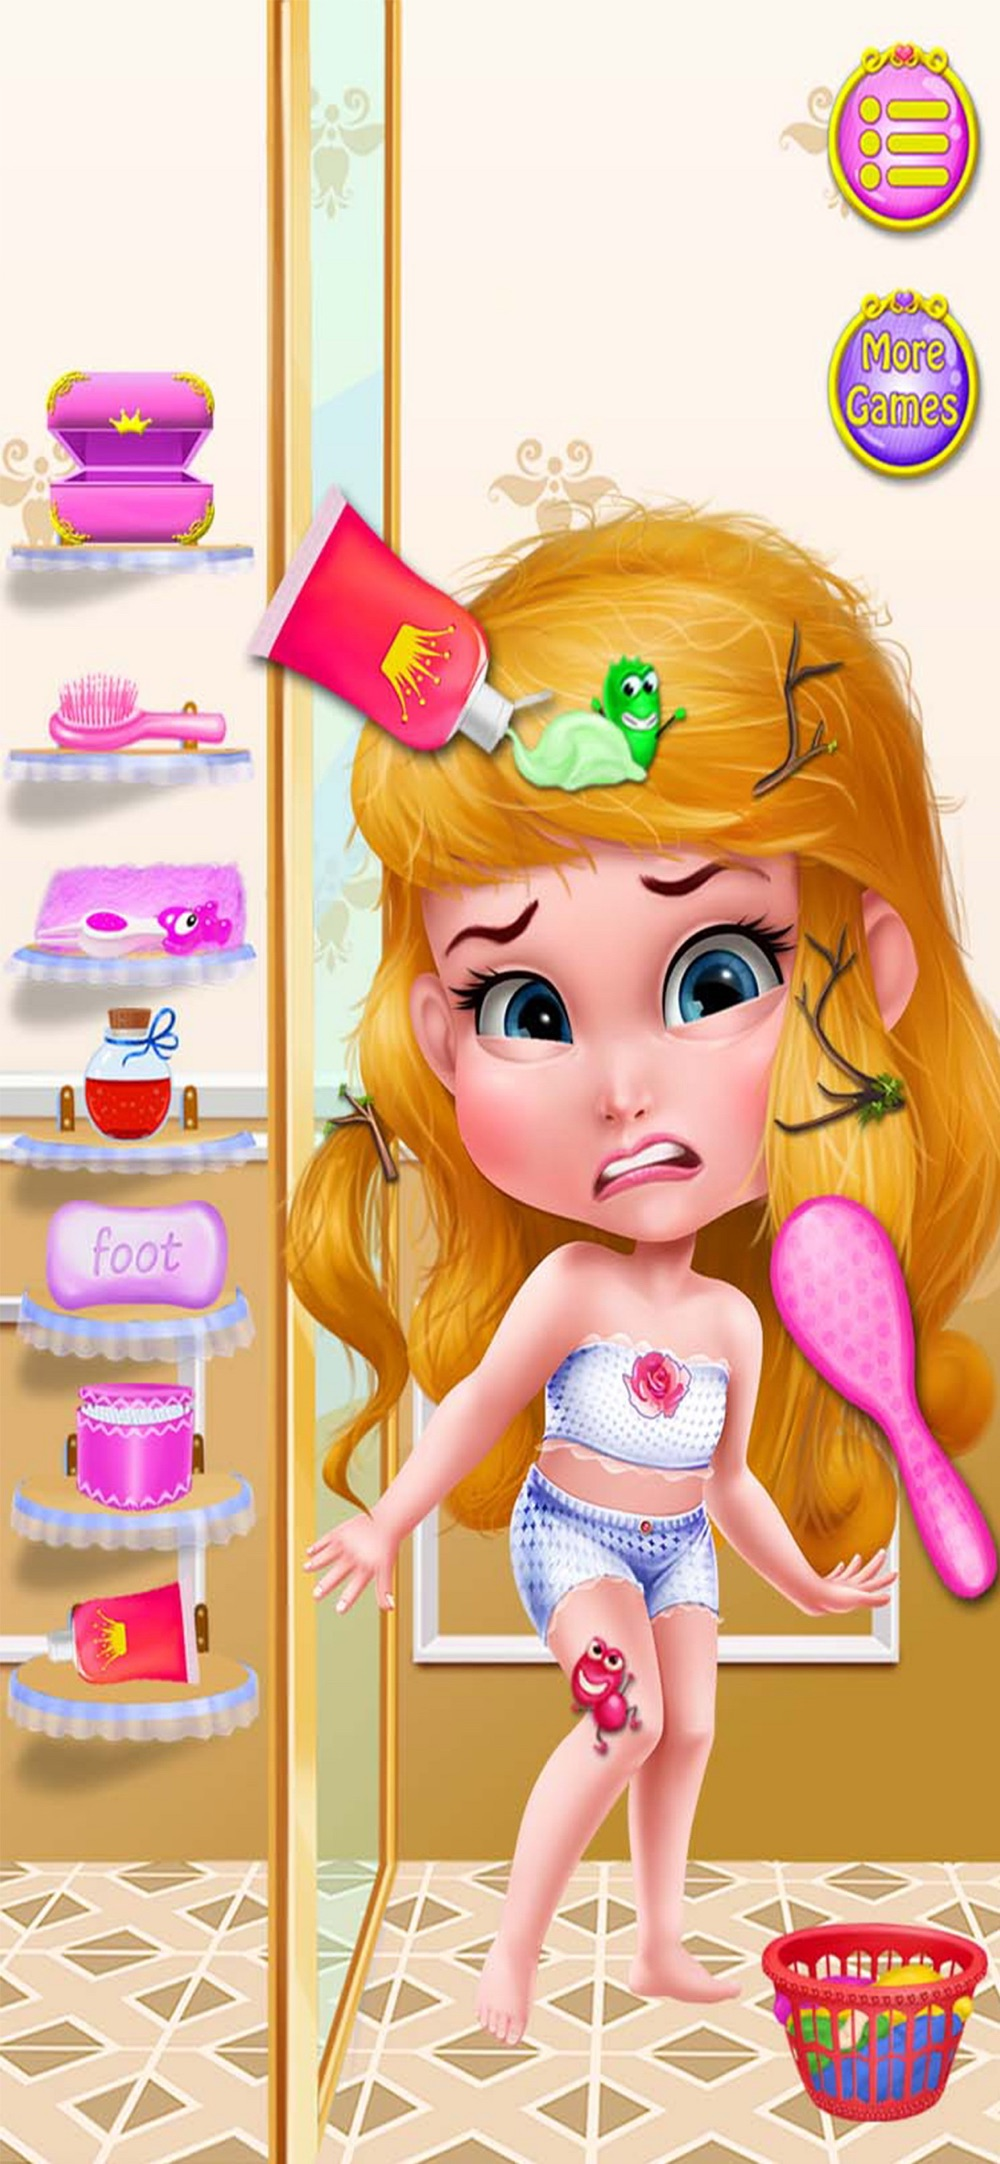 Princess Makeover™: Girls Game Cheat Codes